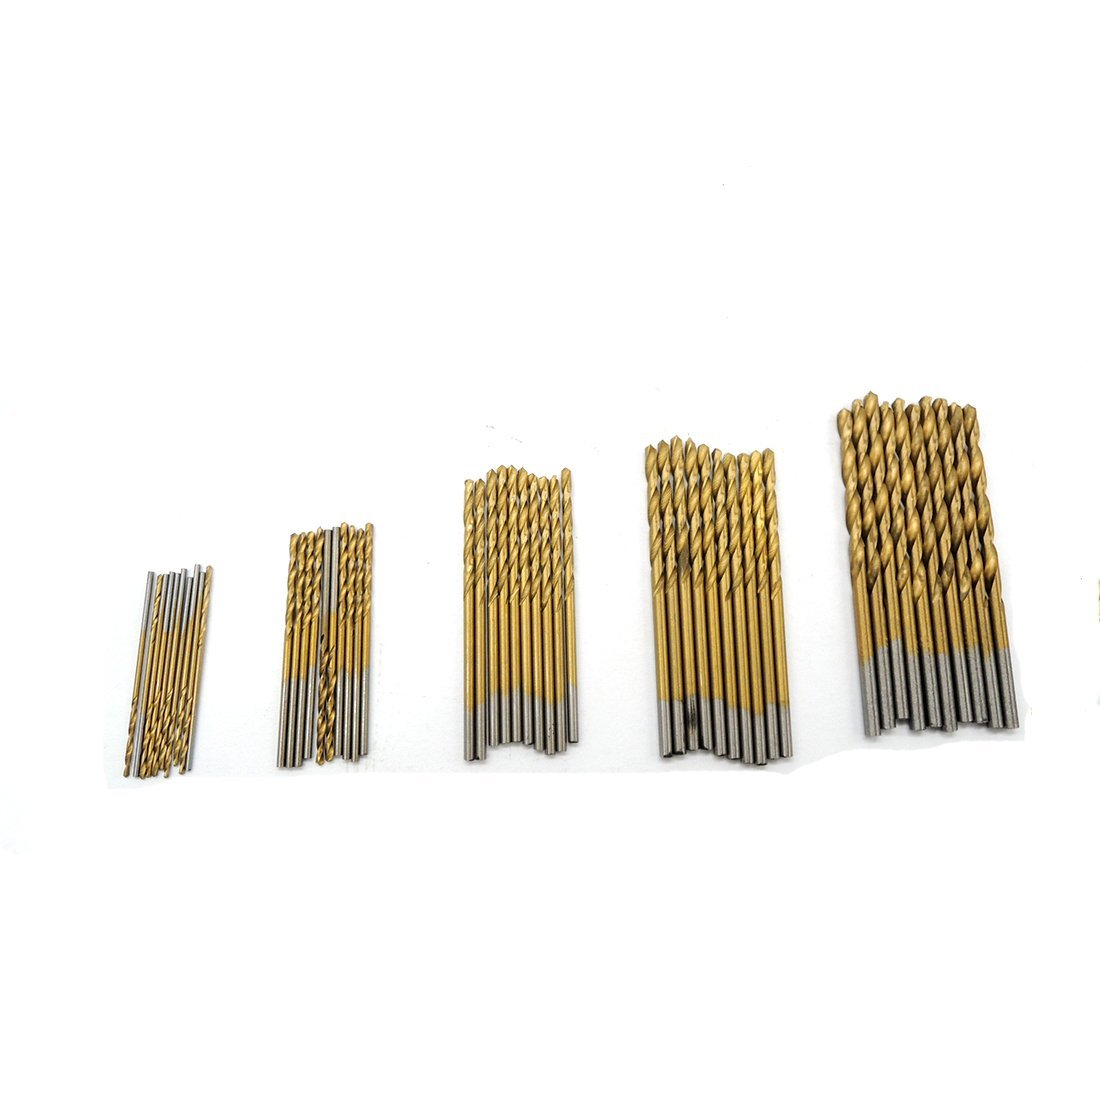 50Pcs HSS High Steel Titanium Coated Drill Wood Tool 1/1.5/2/2.5/3mm For Metal